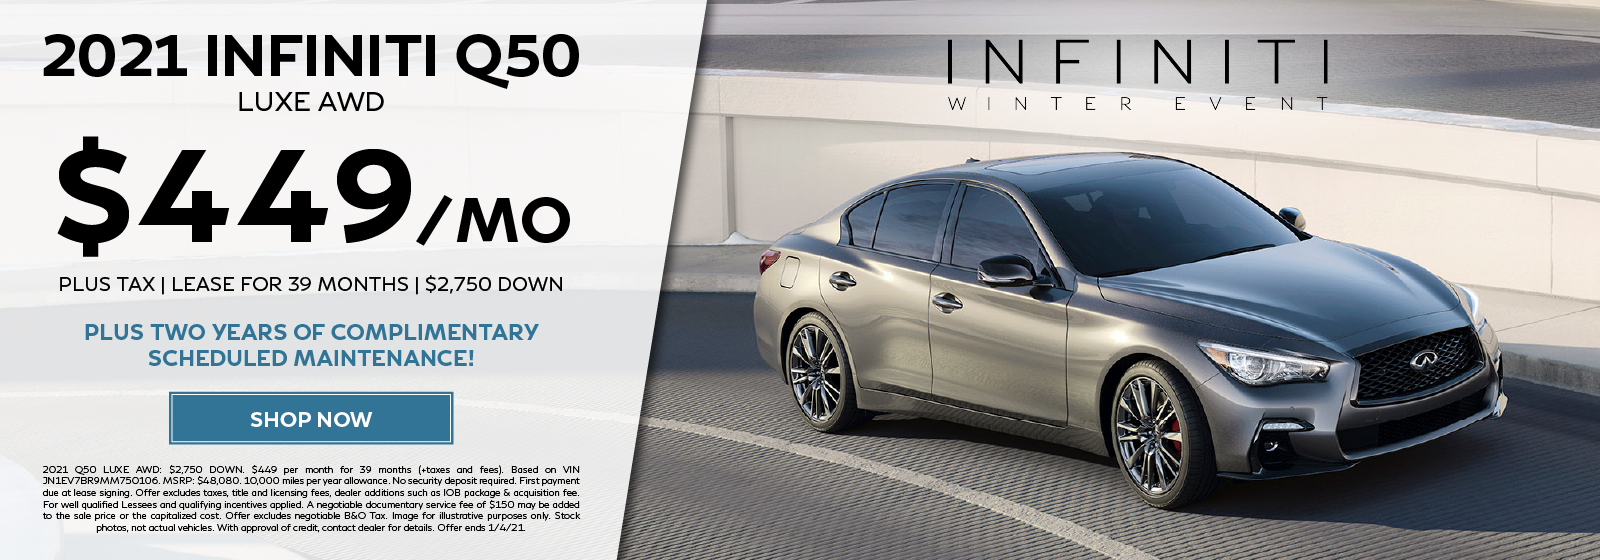 Lease a new 2021 Q50 3.0t LUXE AWD for $449 per month for 39 months plus two years of complimentary scheduled maintenance. Click to shop now.